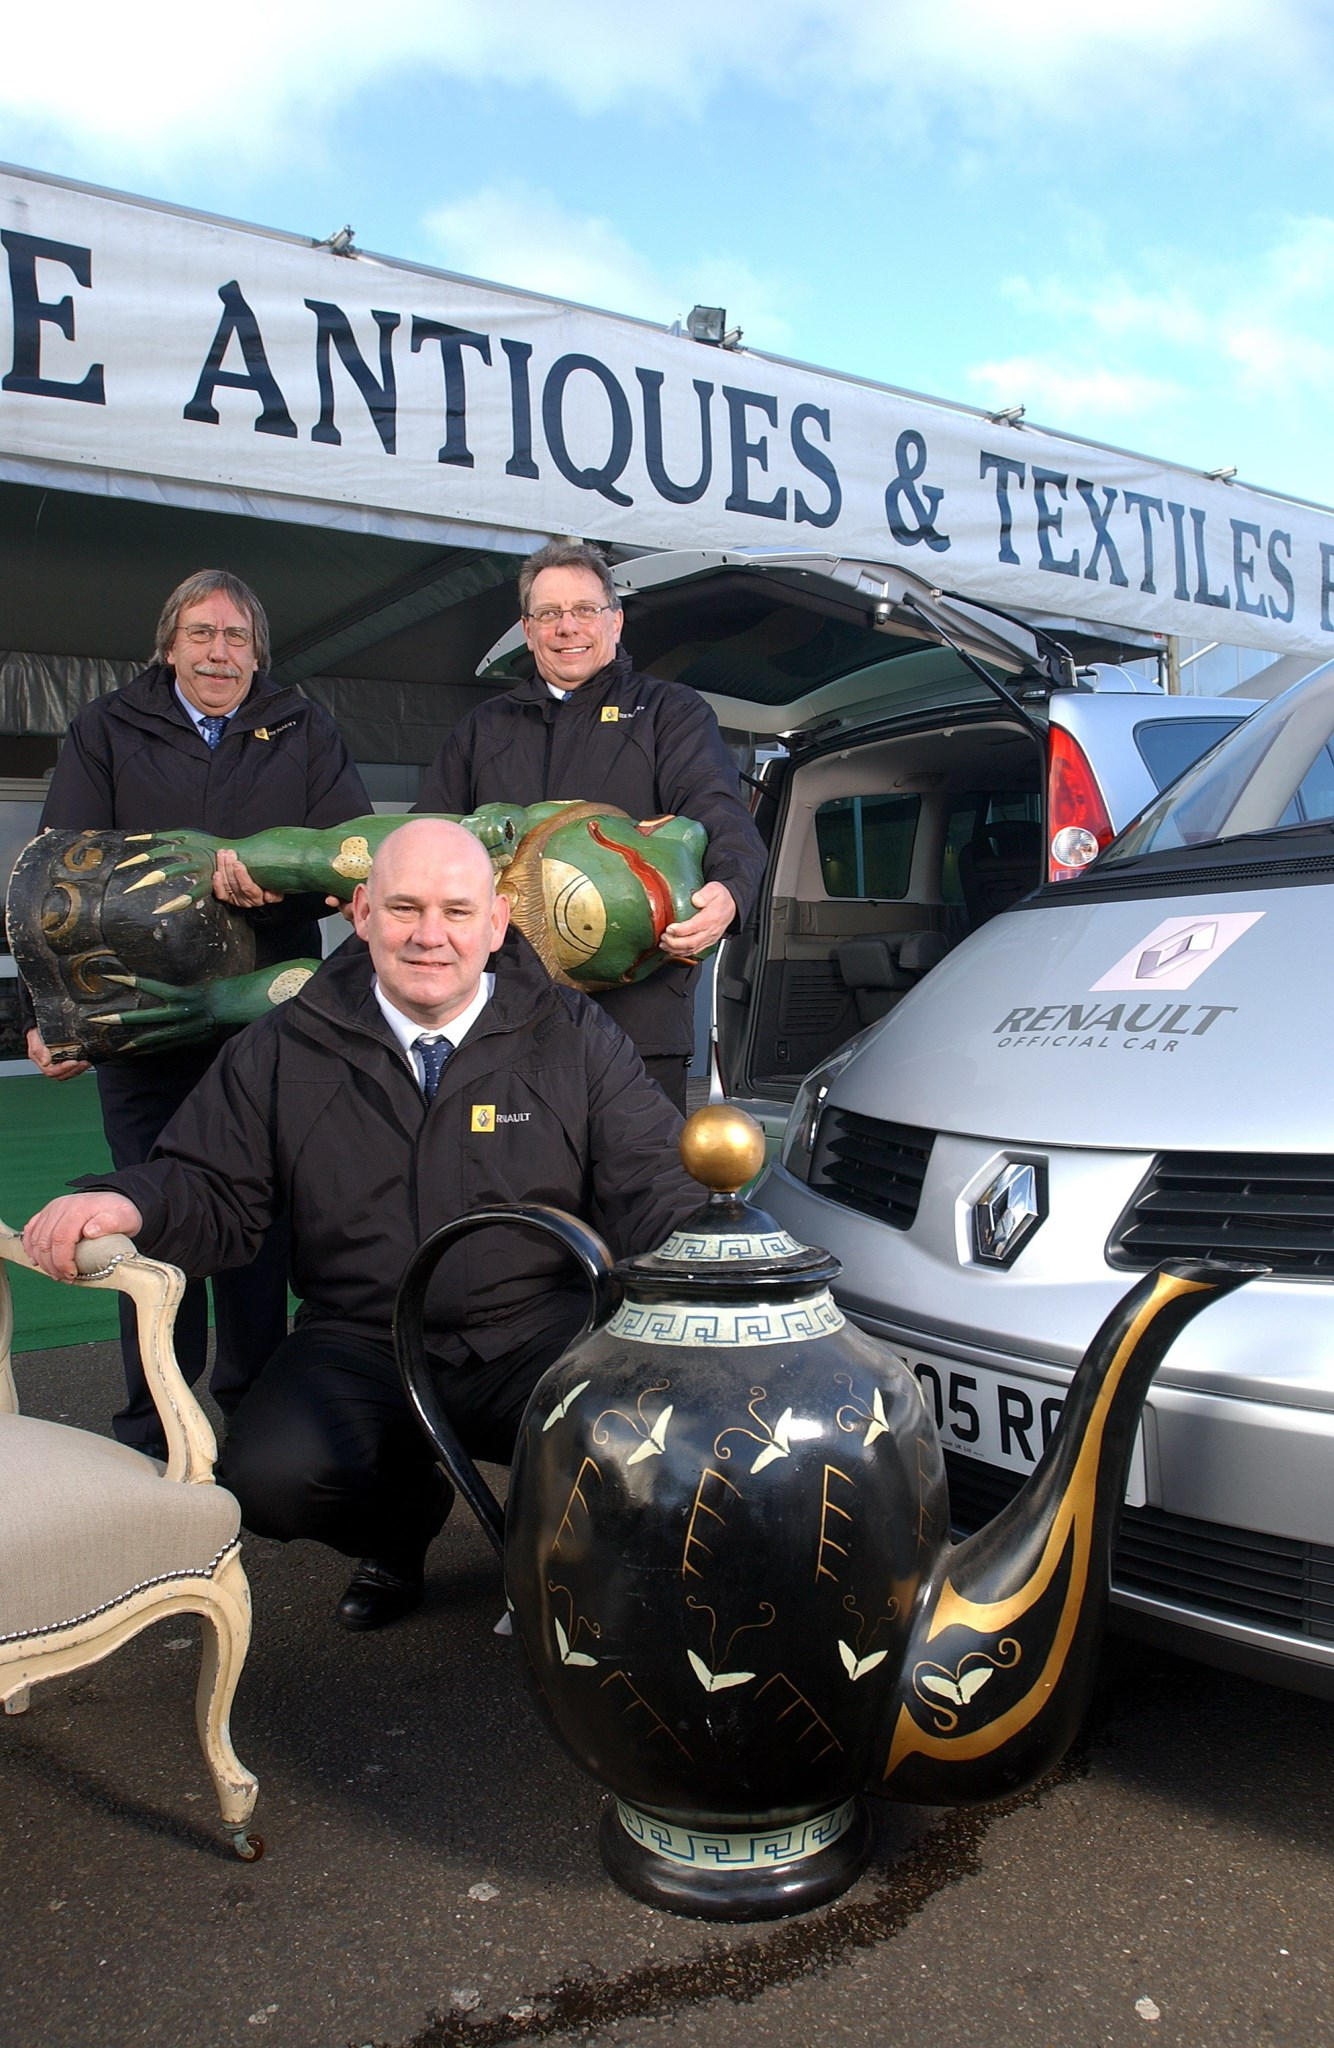 Les with Chris Hayward and Peter Morrison - working for Renault UK (which he did for over 20yrs!)